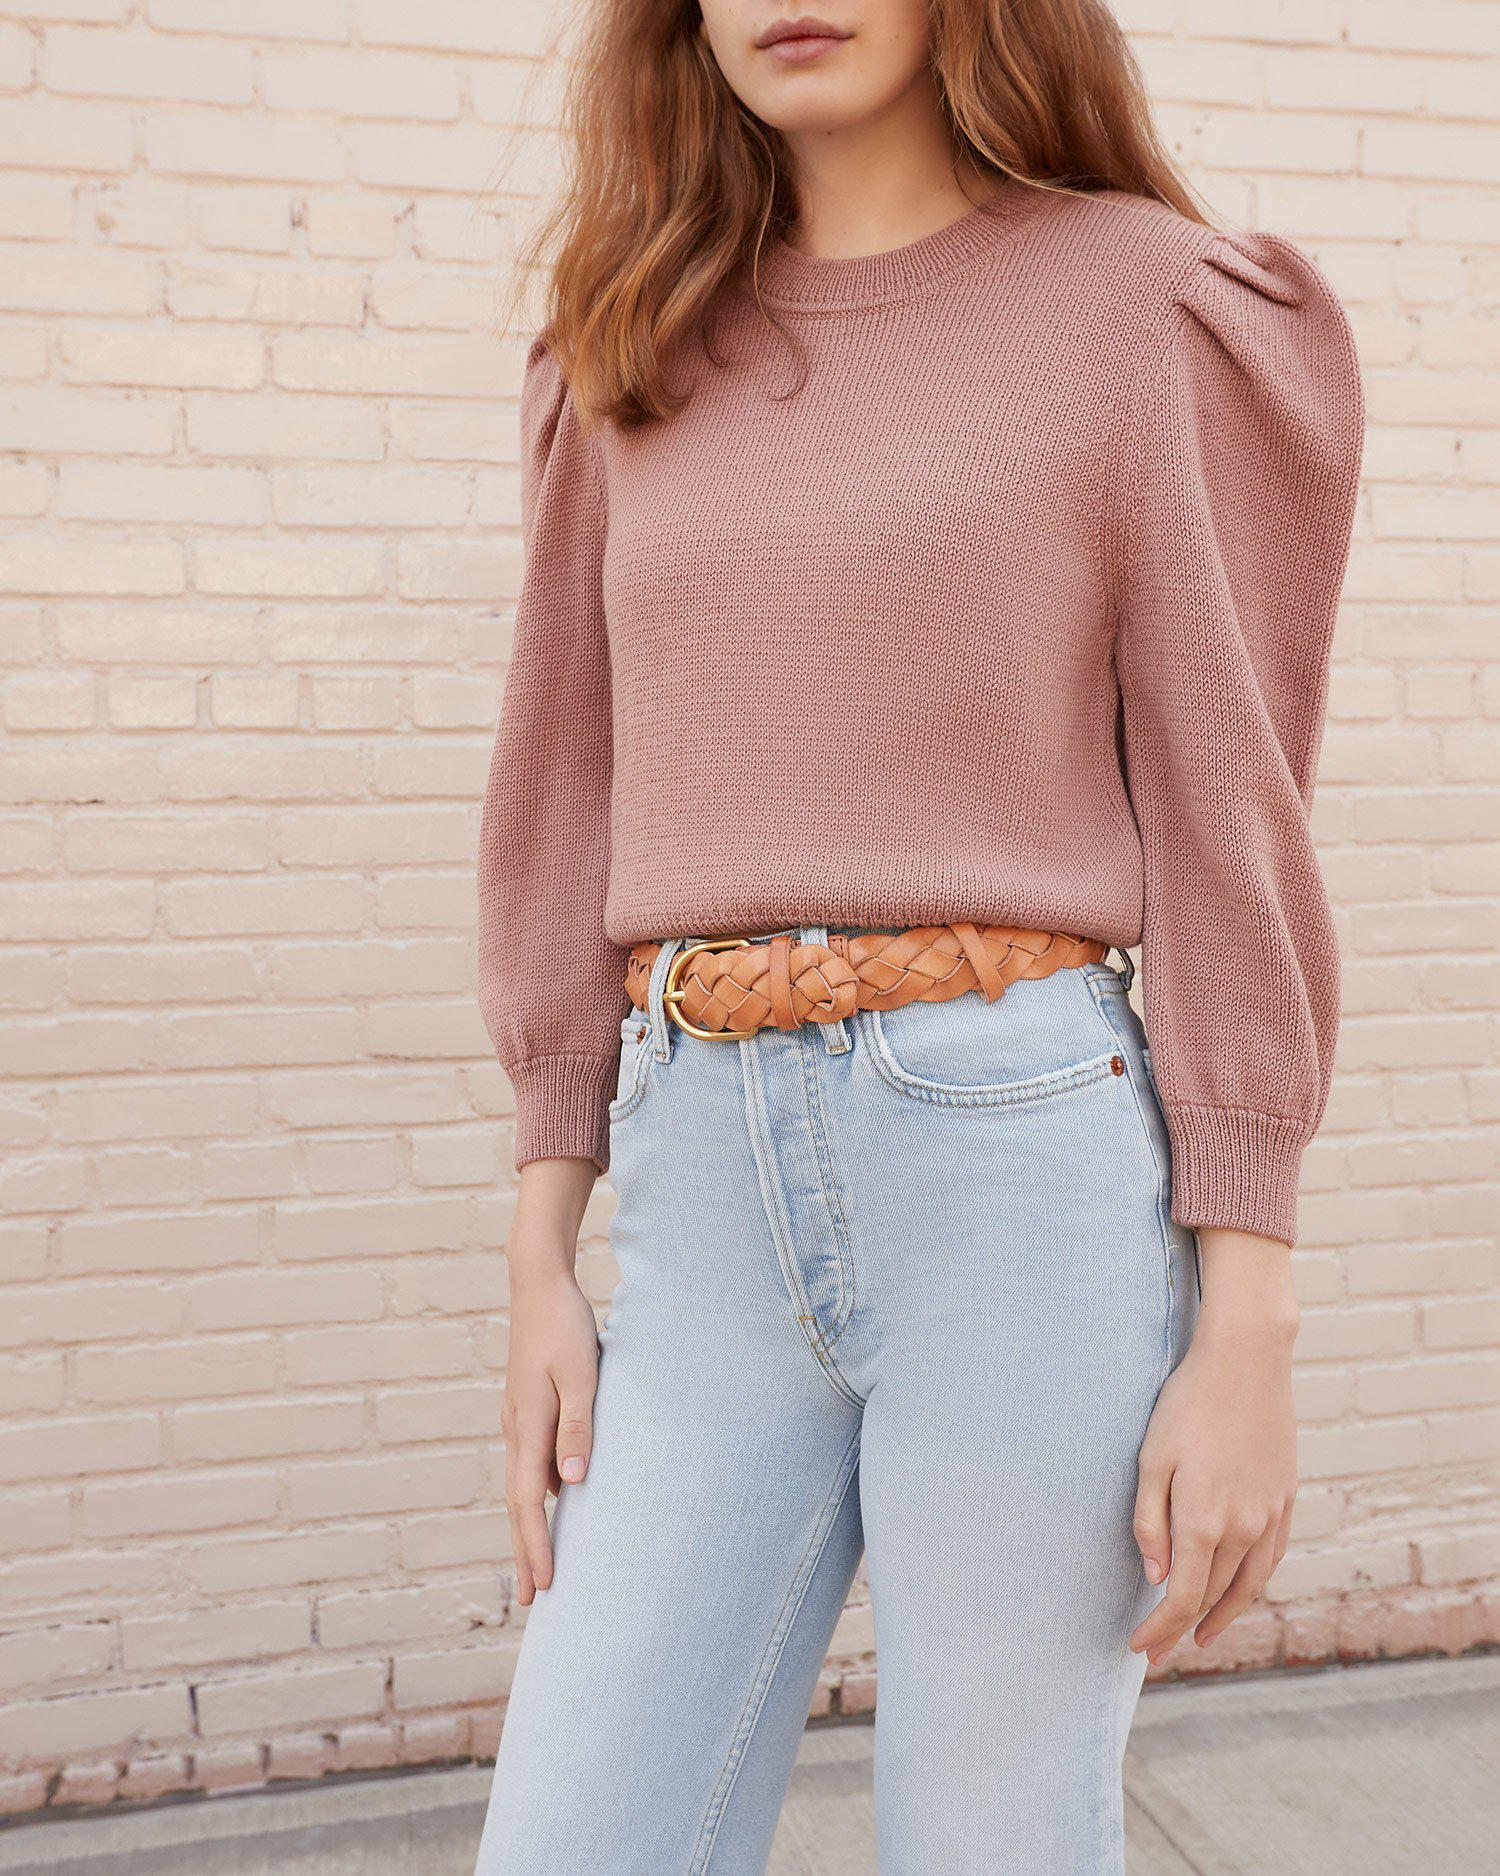 Knits for Good Blush Sweater